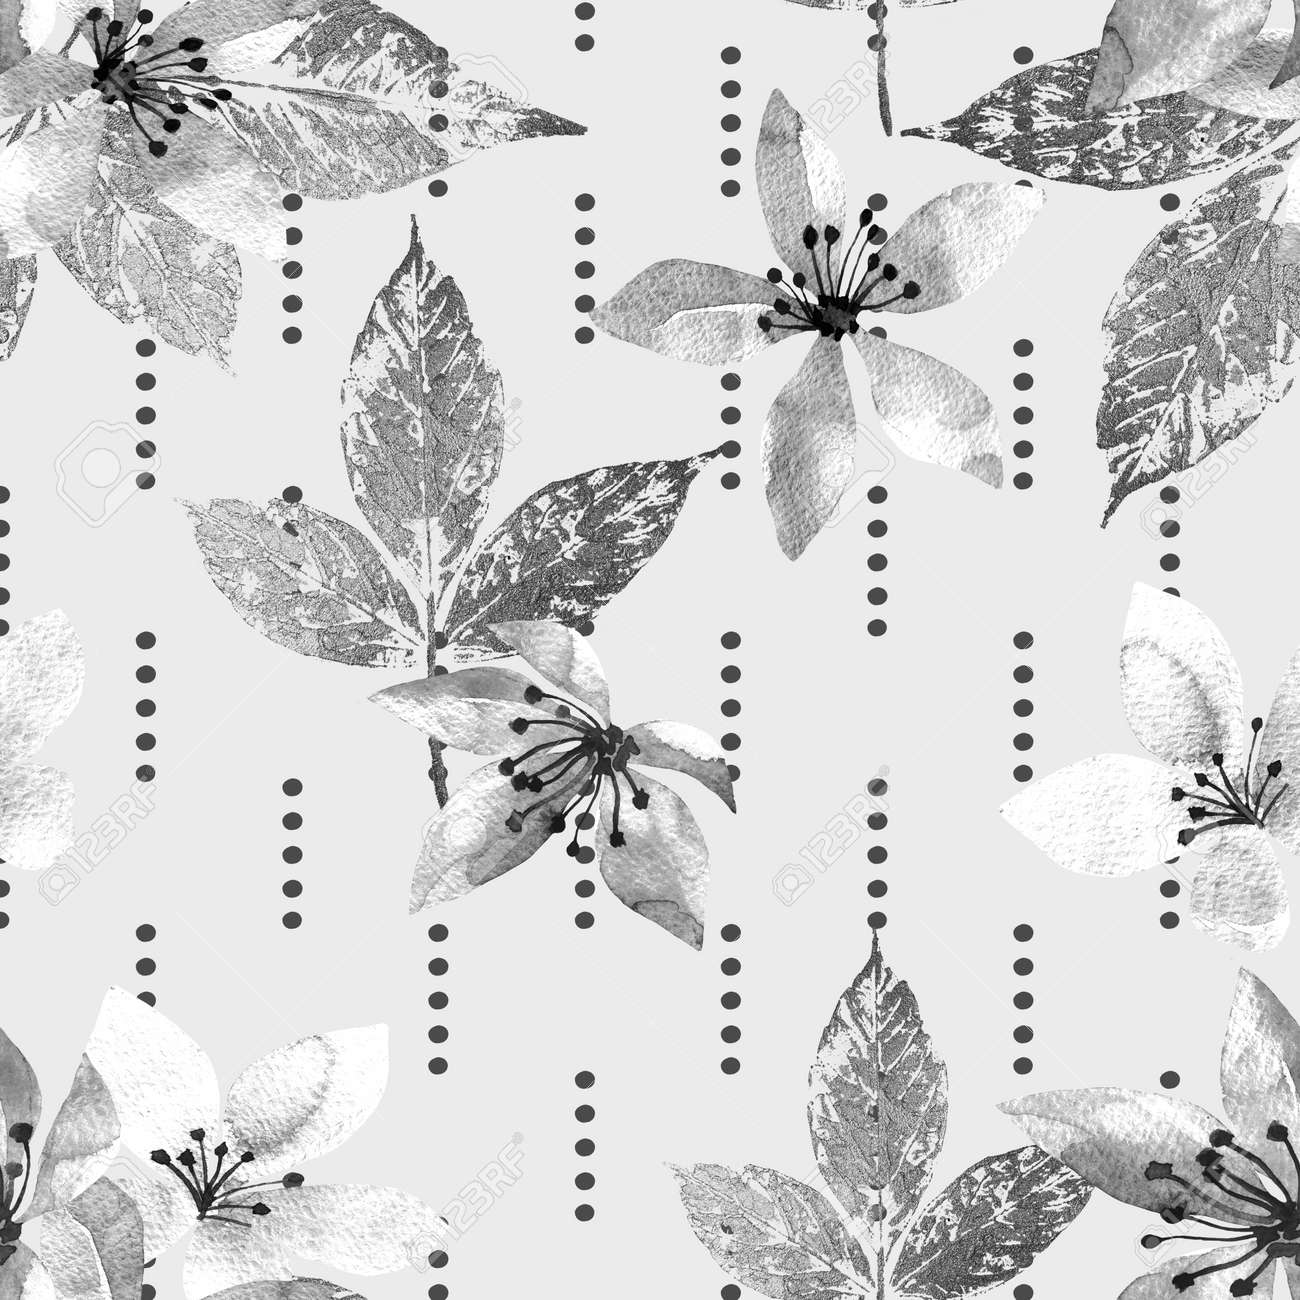 Floral seamless pattern with abstract leaves and flowers watercolor. Art illustration in hand painting style. Nature background. - 169460683